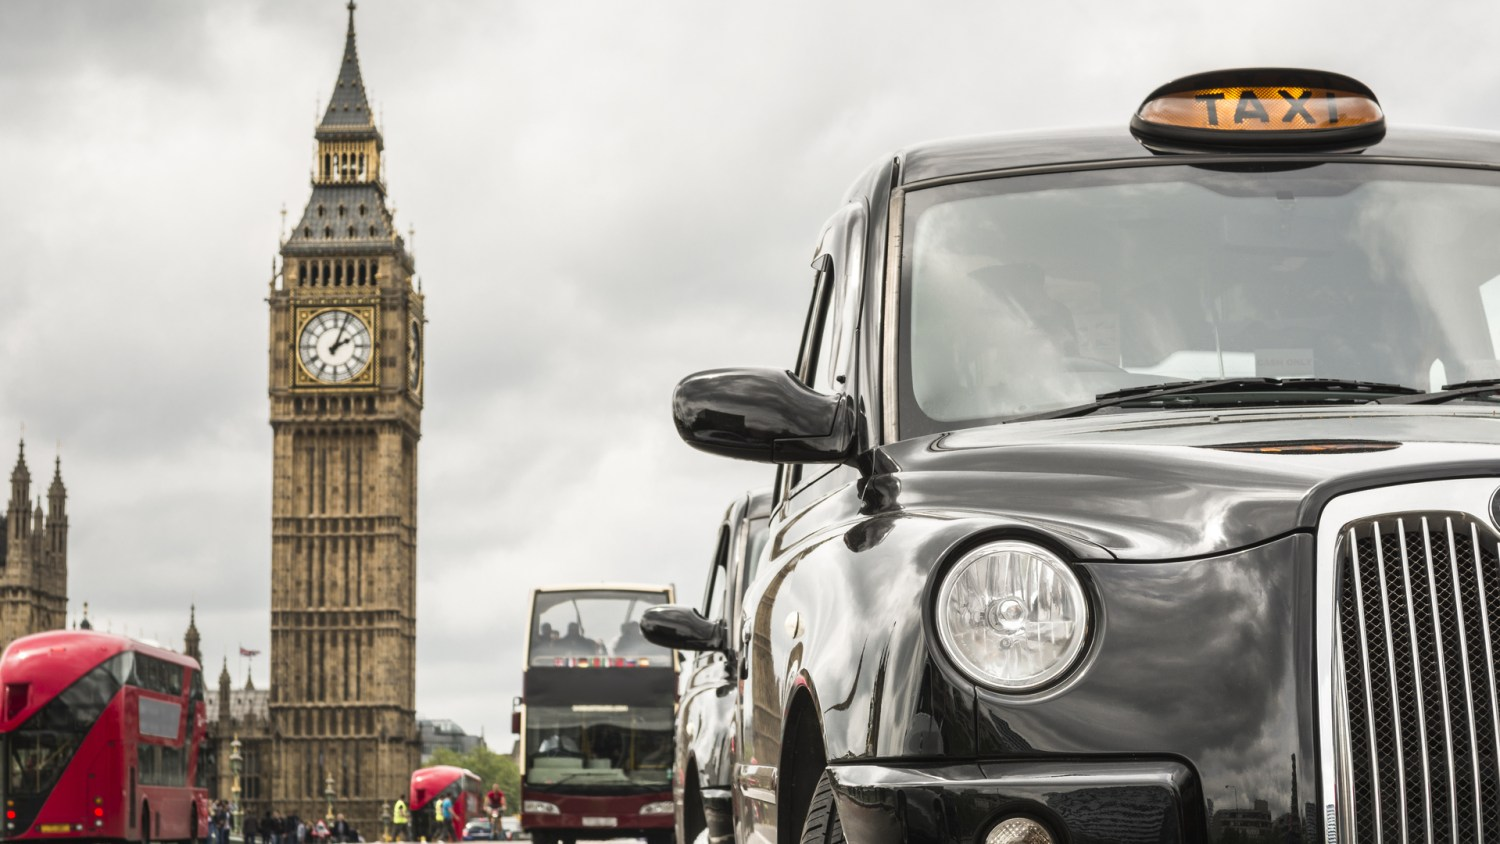 Age limit for London black cabs reduced to 12 years